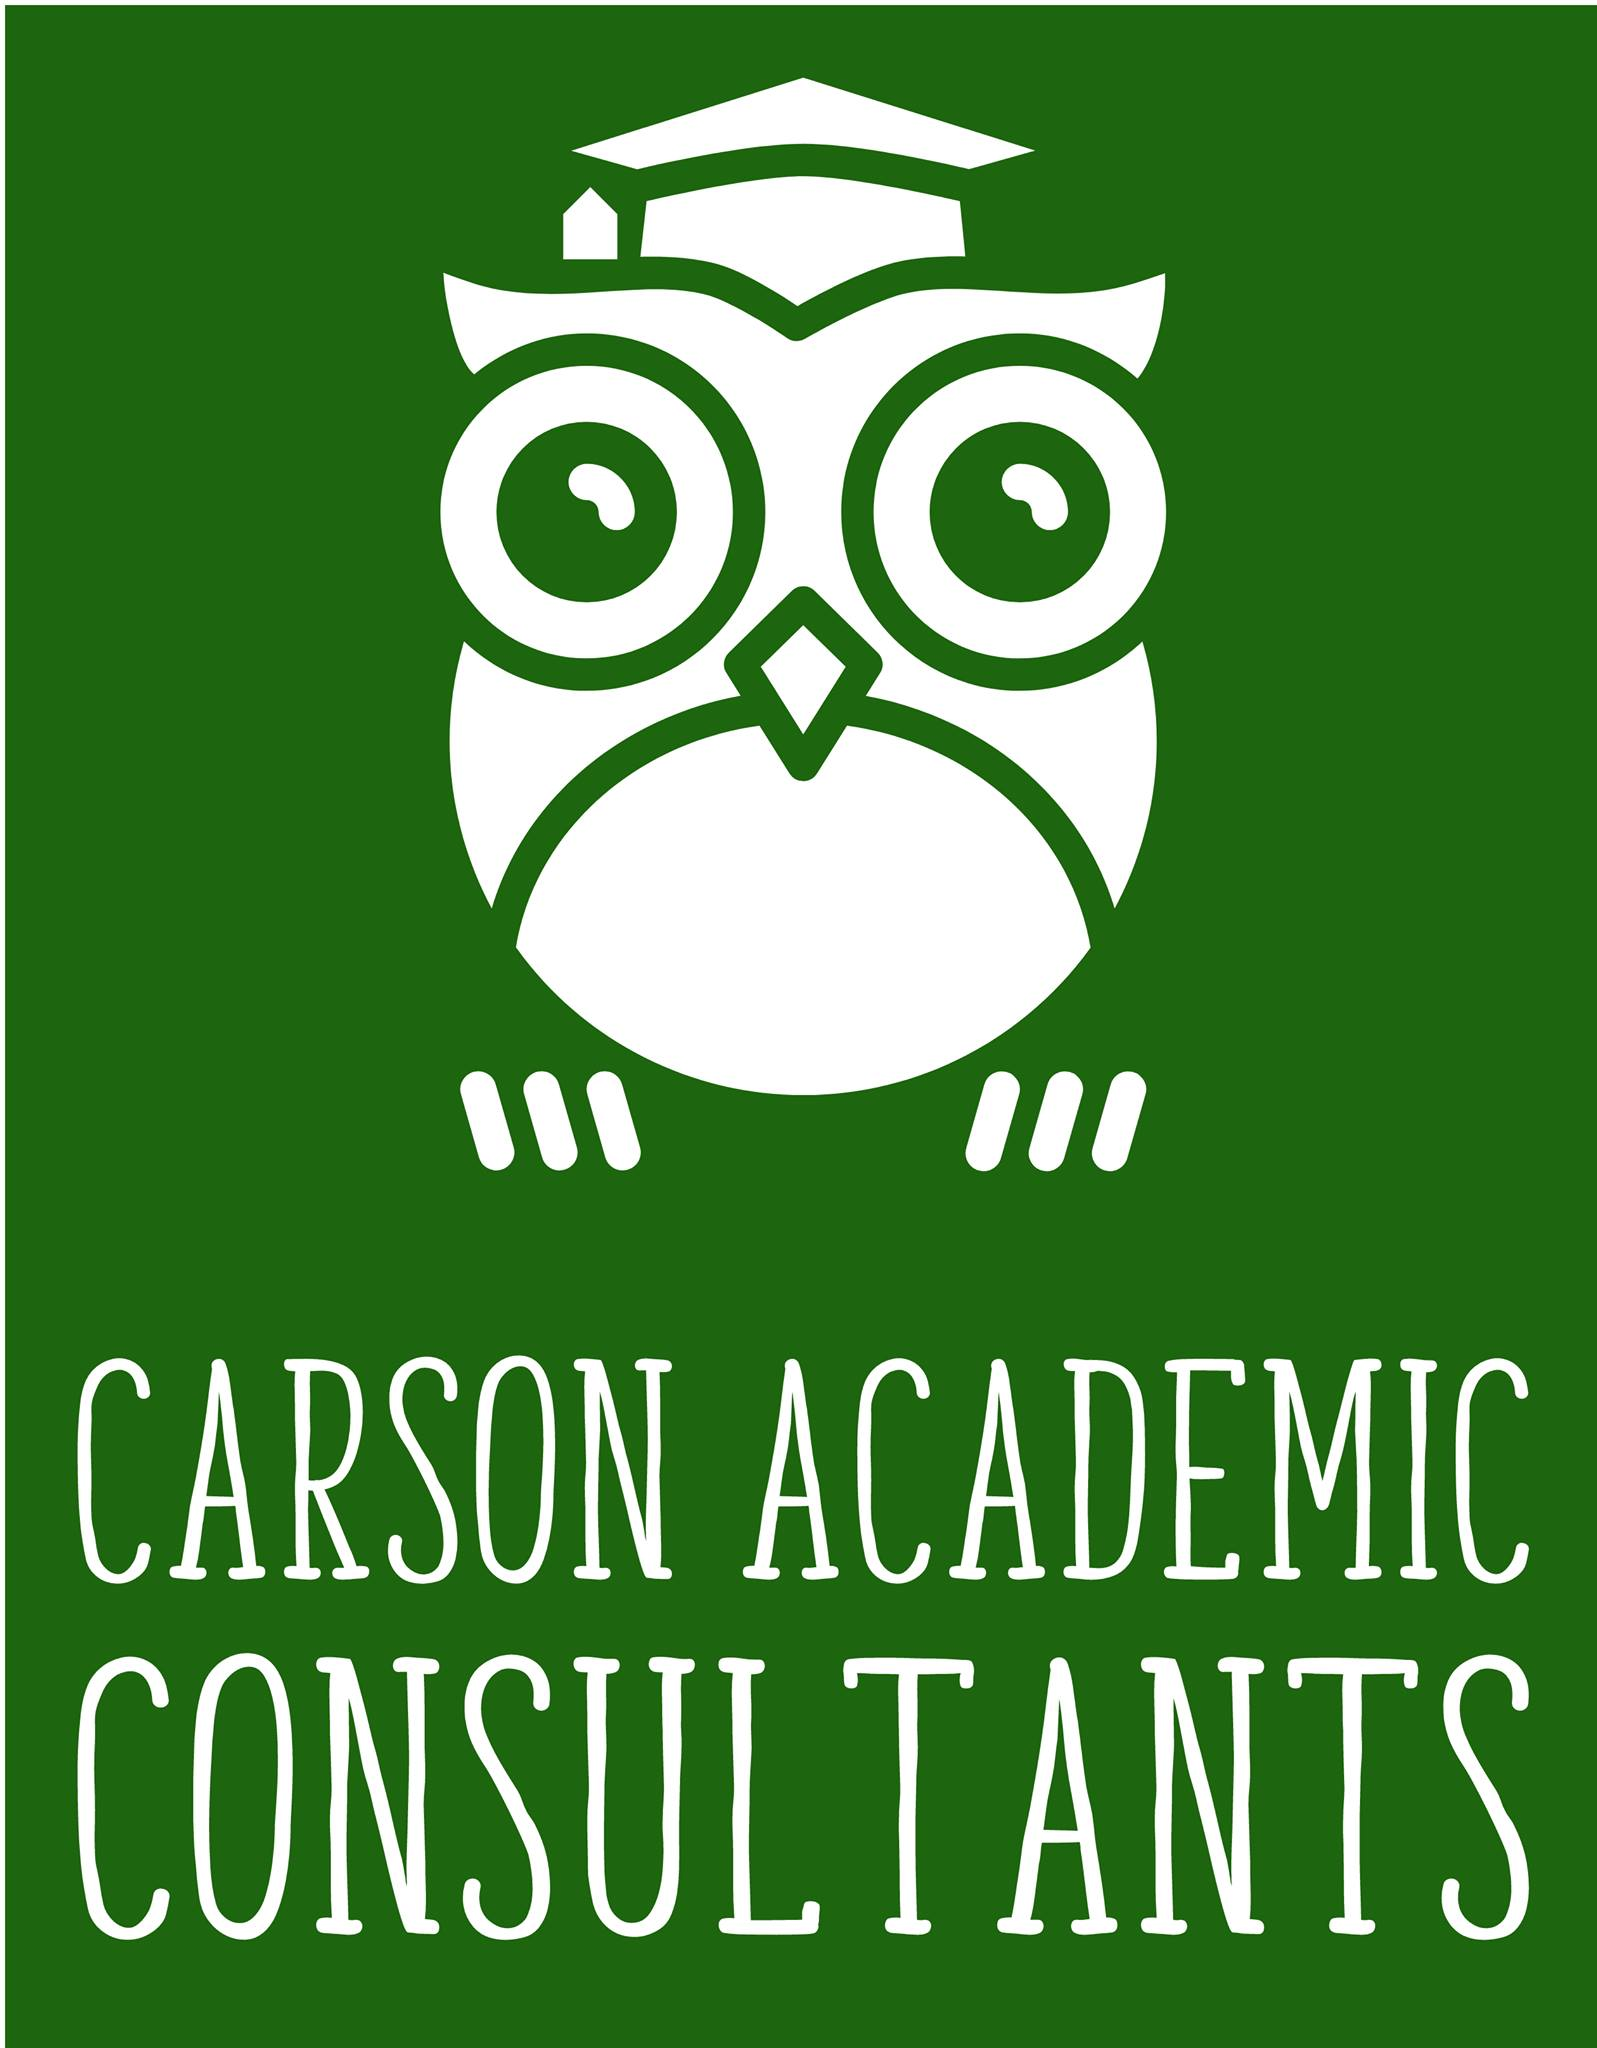 Green and white logo of an owl with a graduation cap and the text